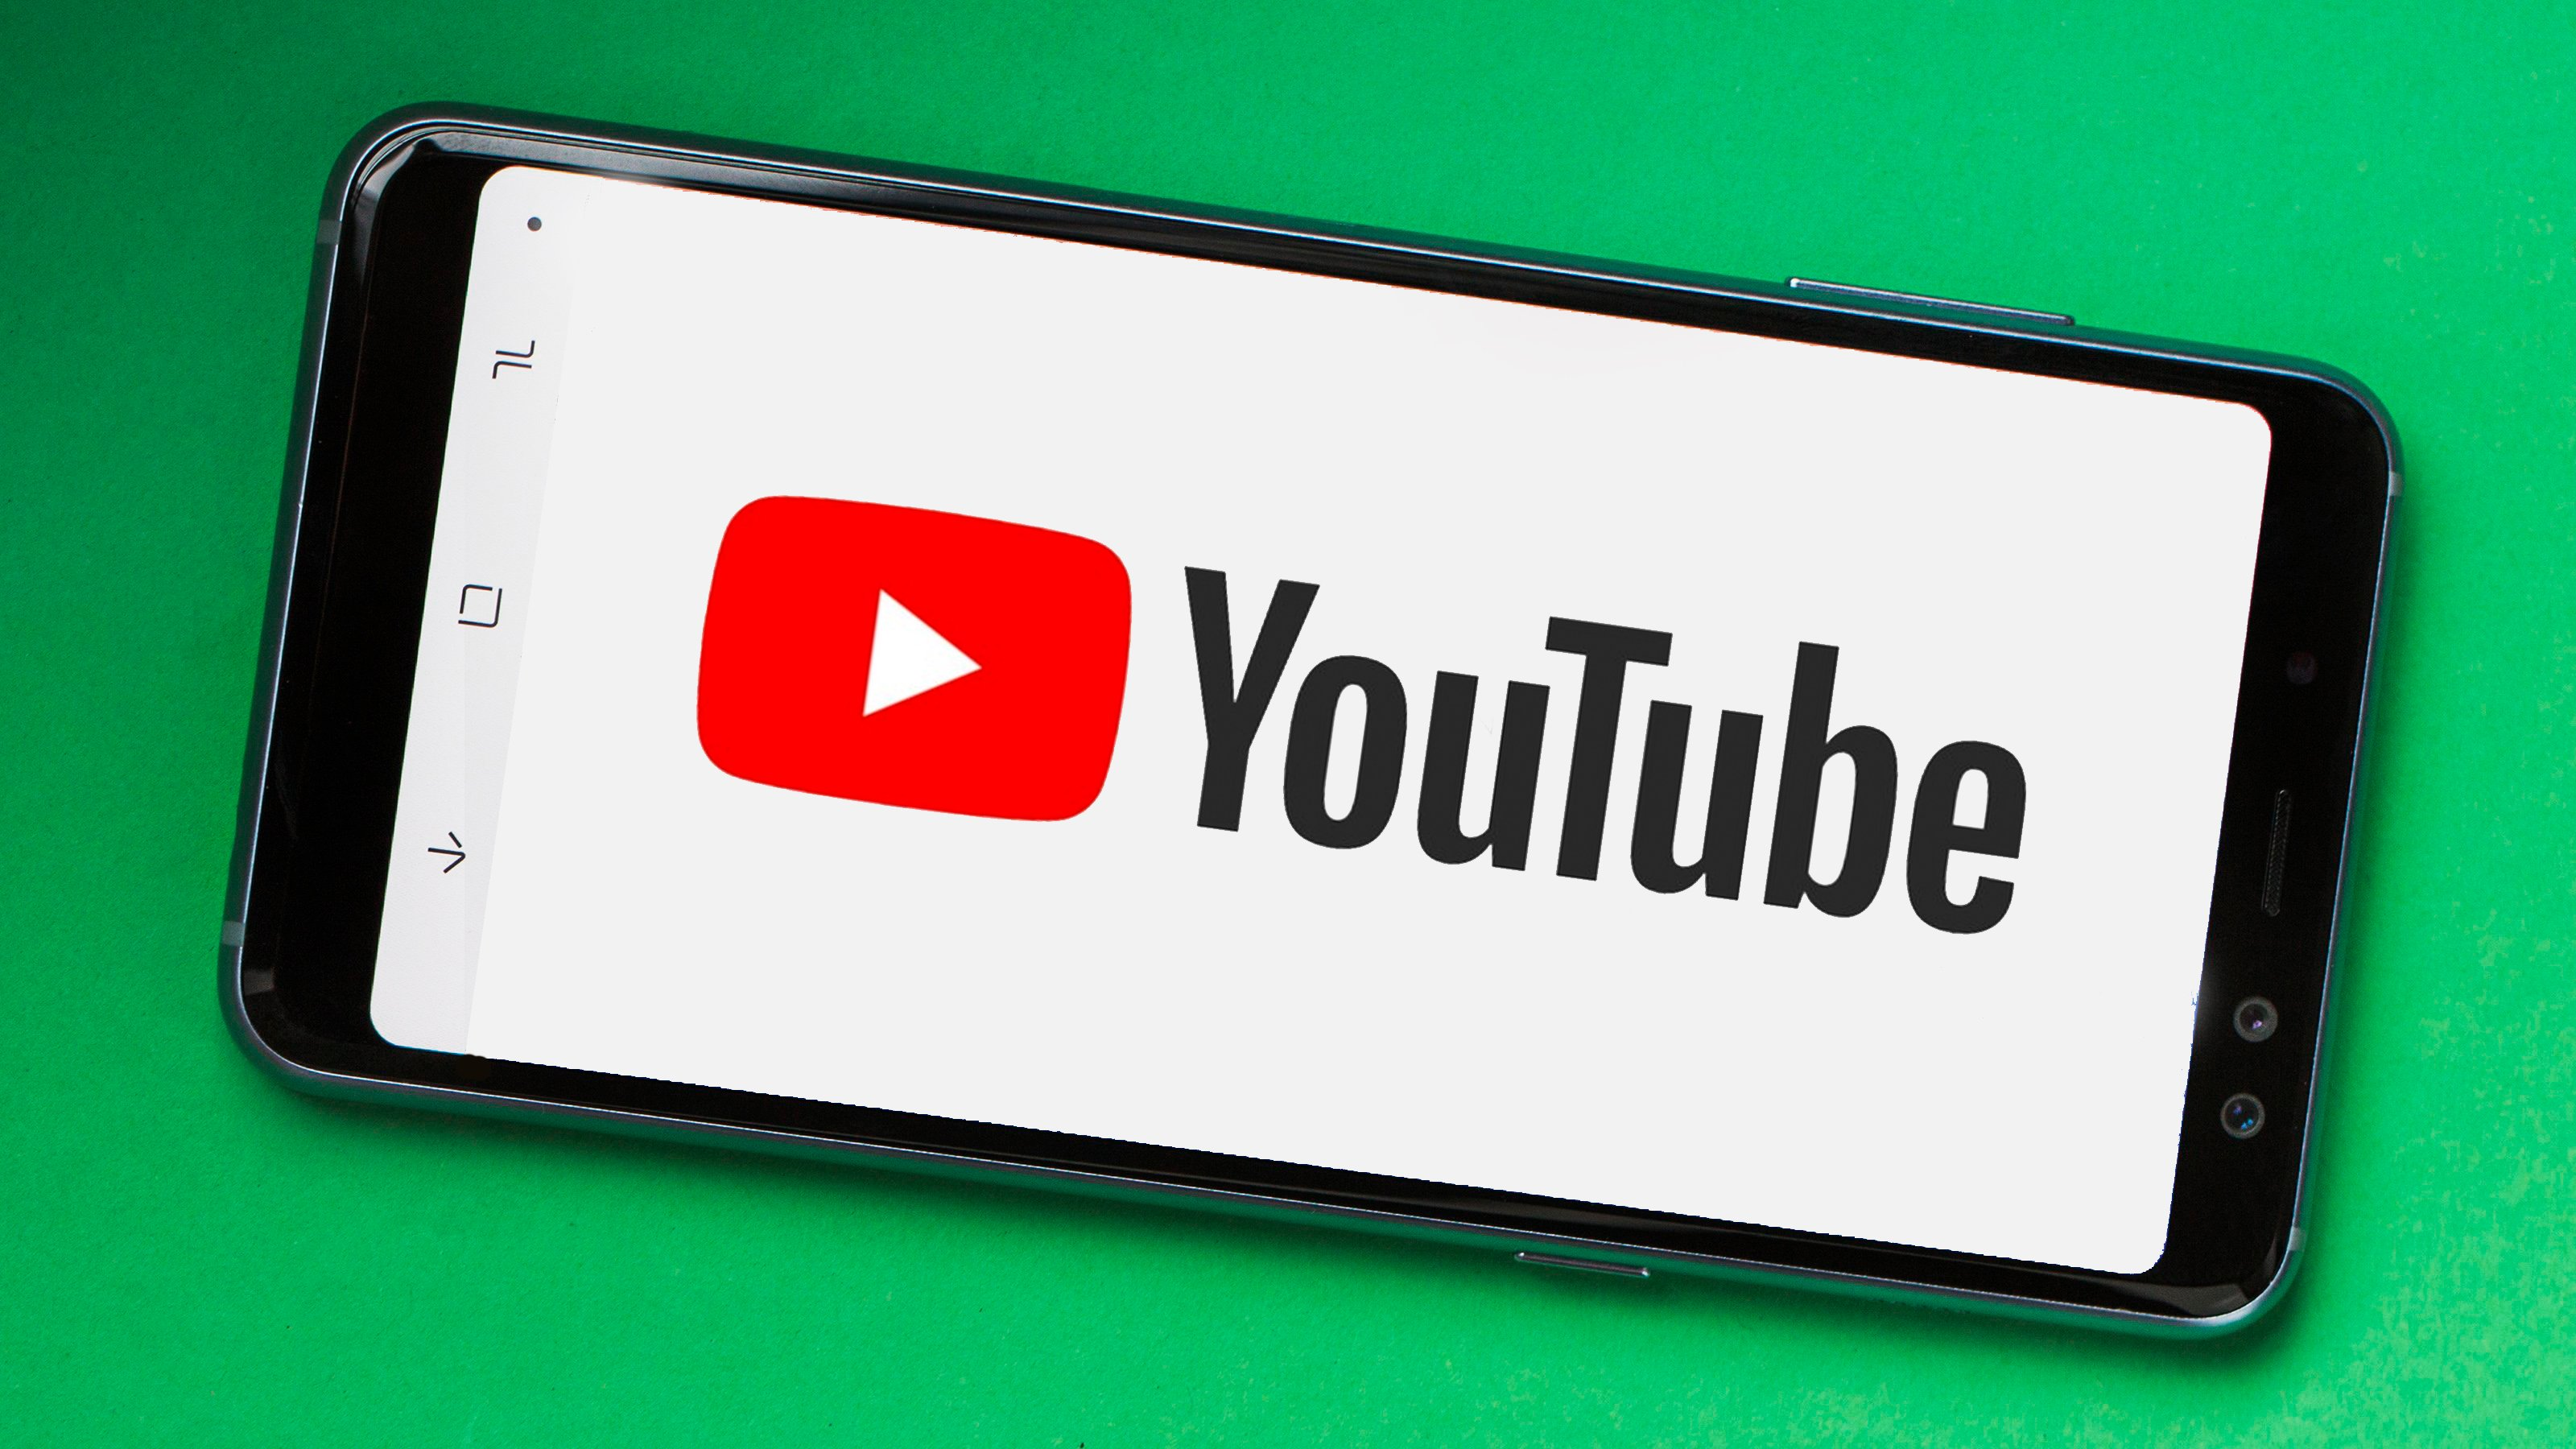 How to download YouTube videos and watch them offline | AndroidPIT